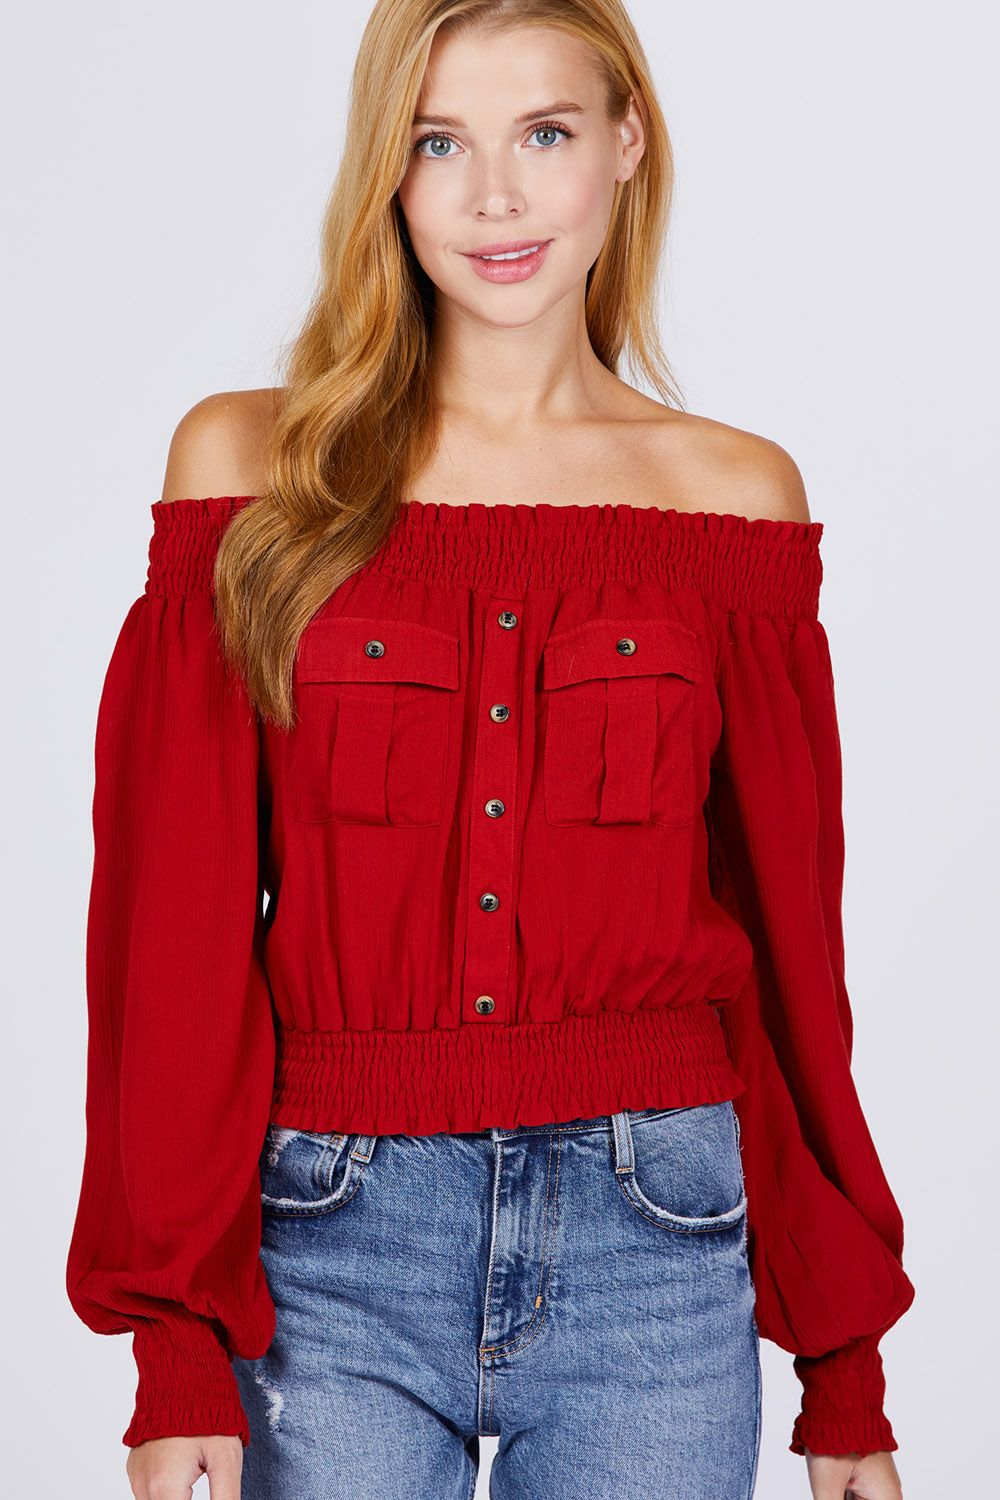 Front Pocket Off Shoulder Top - Sensual Fashion Boutique